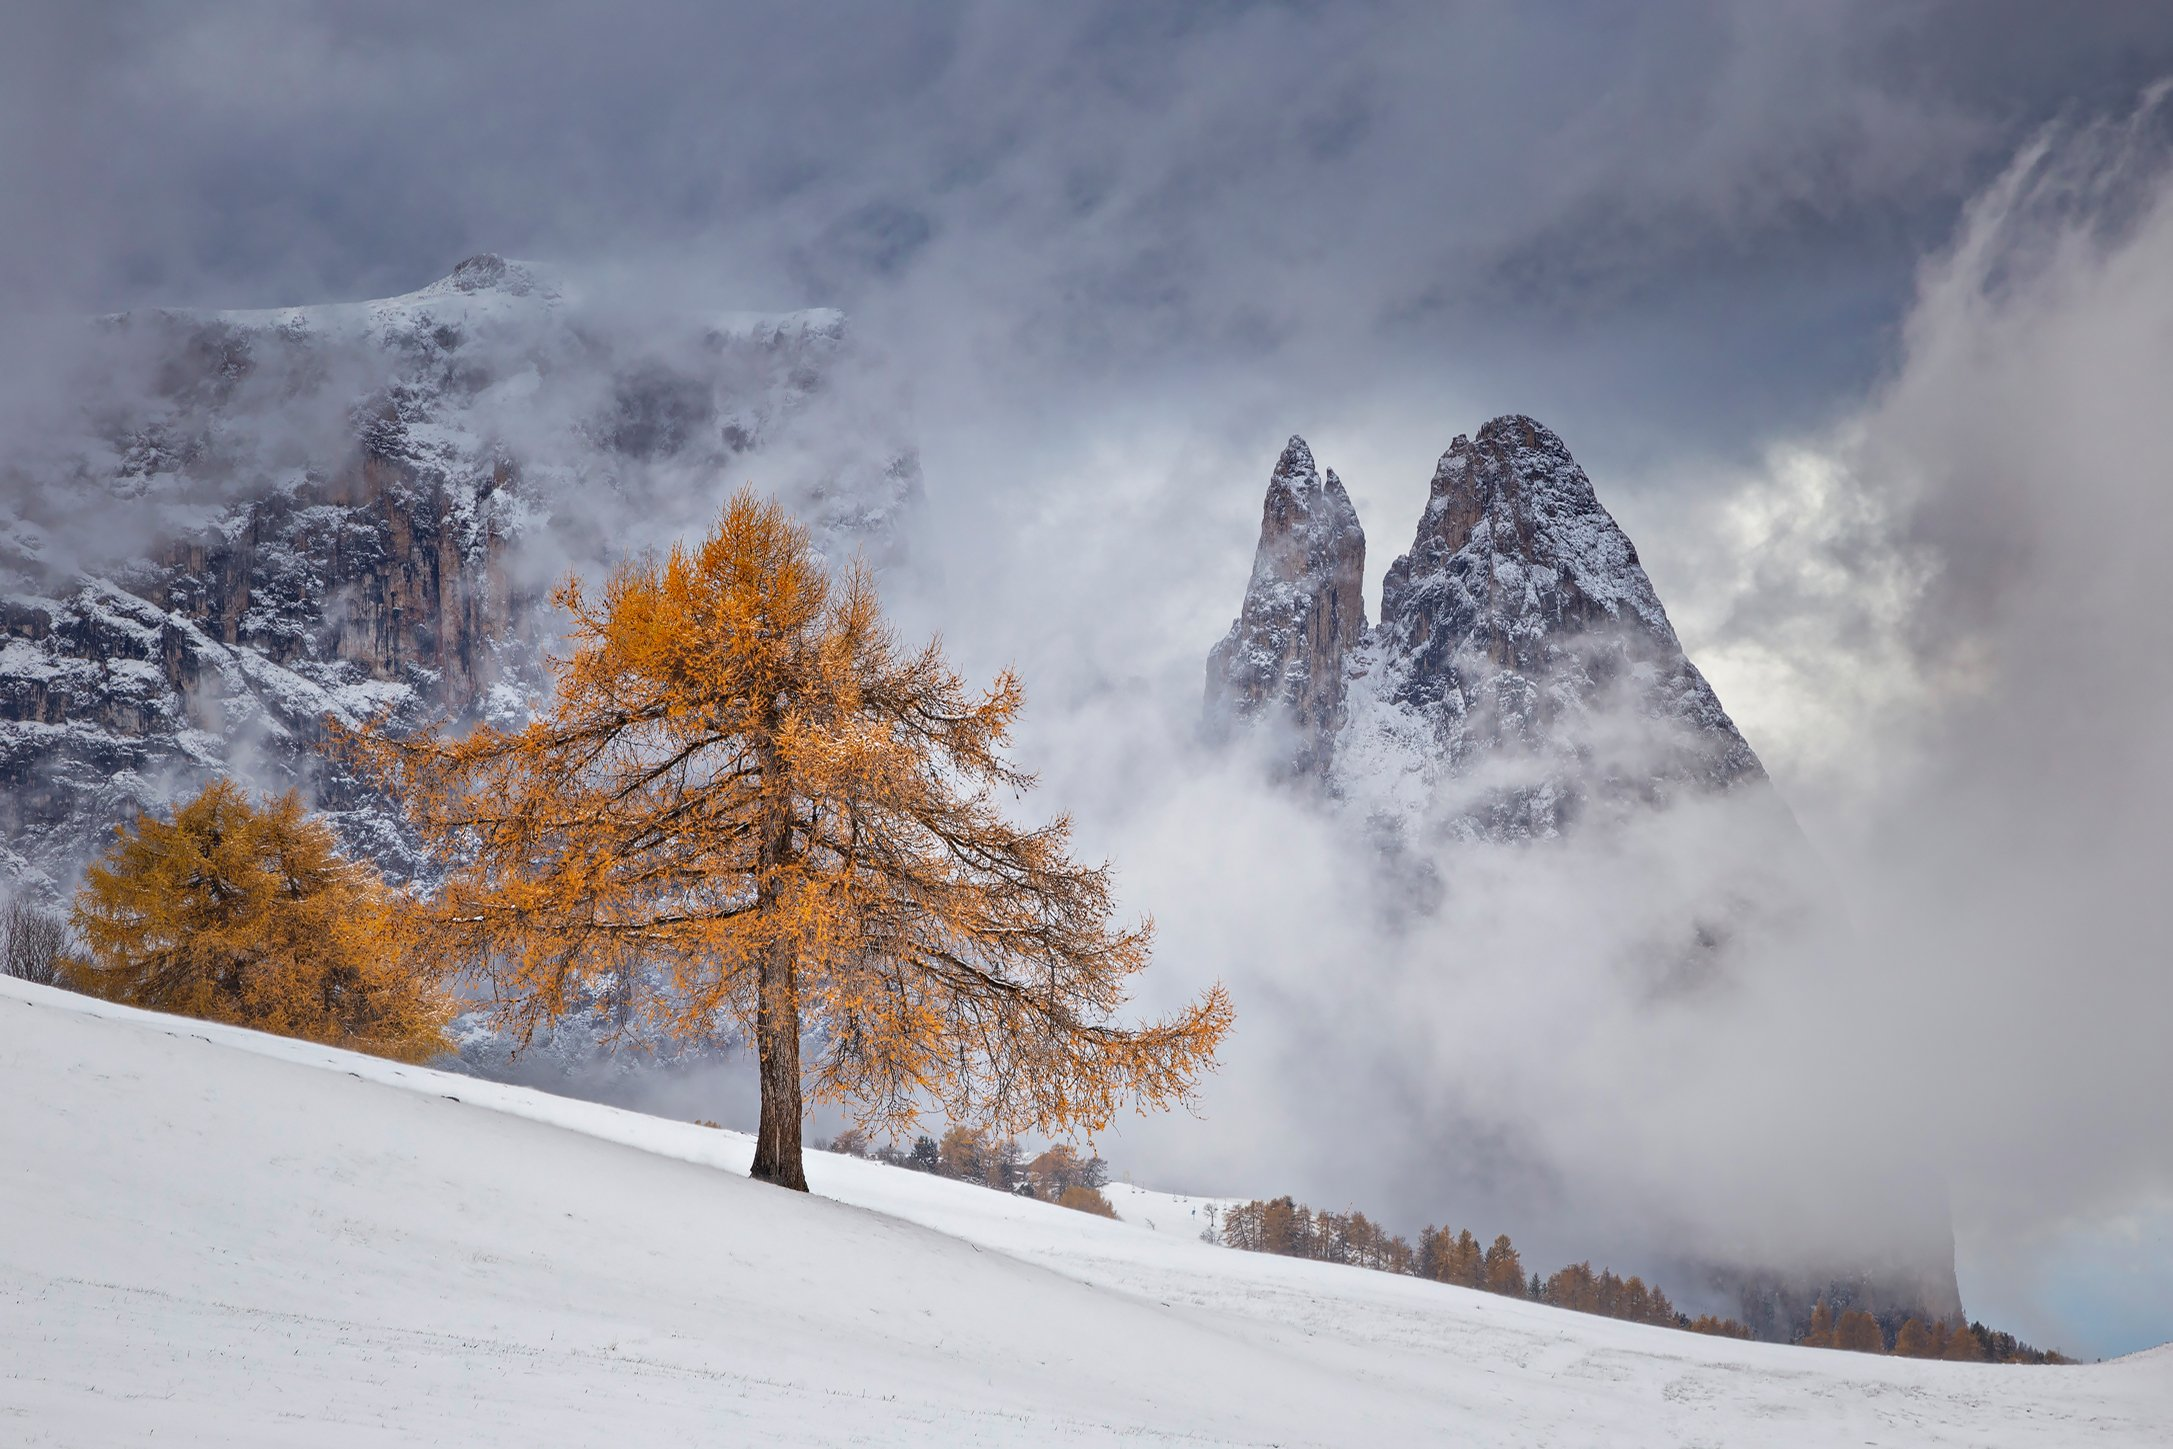 mountains, dolomites, italy, sunset, landscape, nature, travel, autumn, peak, clouds, trees, snow, Lazar Ioan Ovidiu